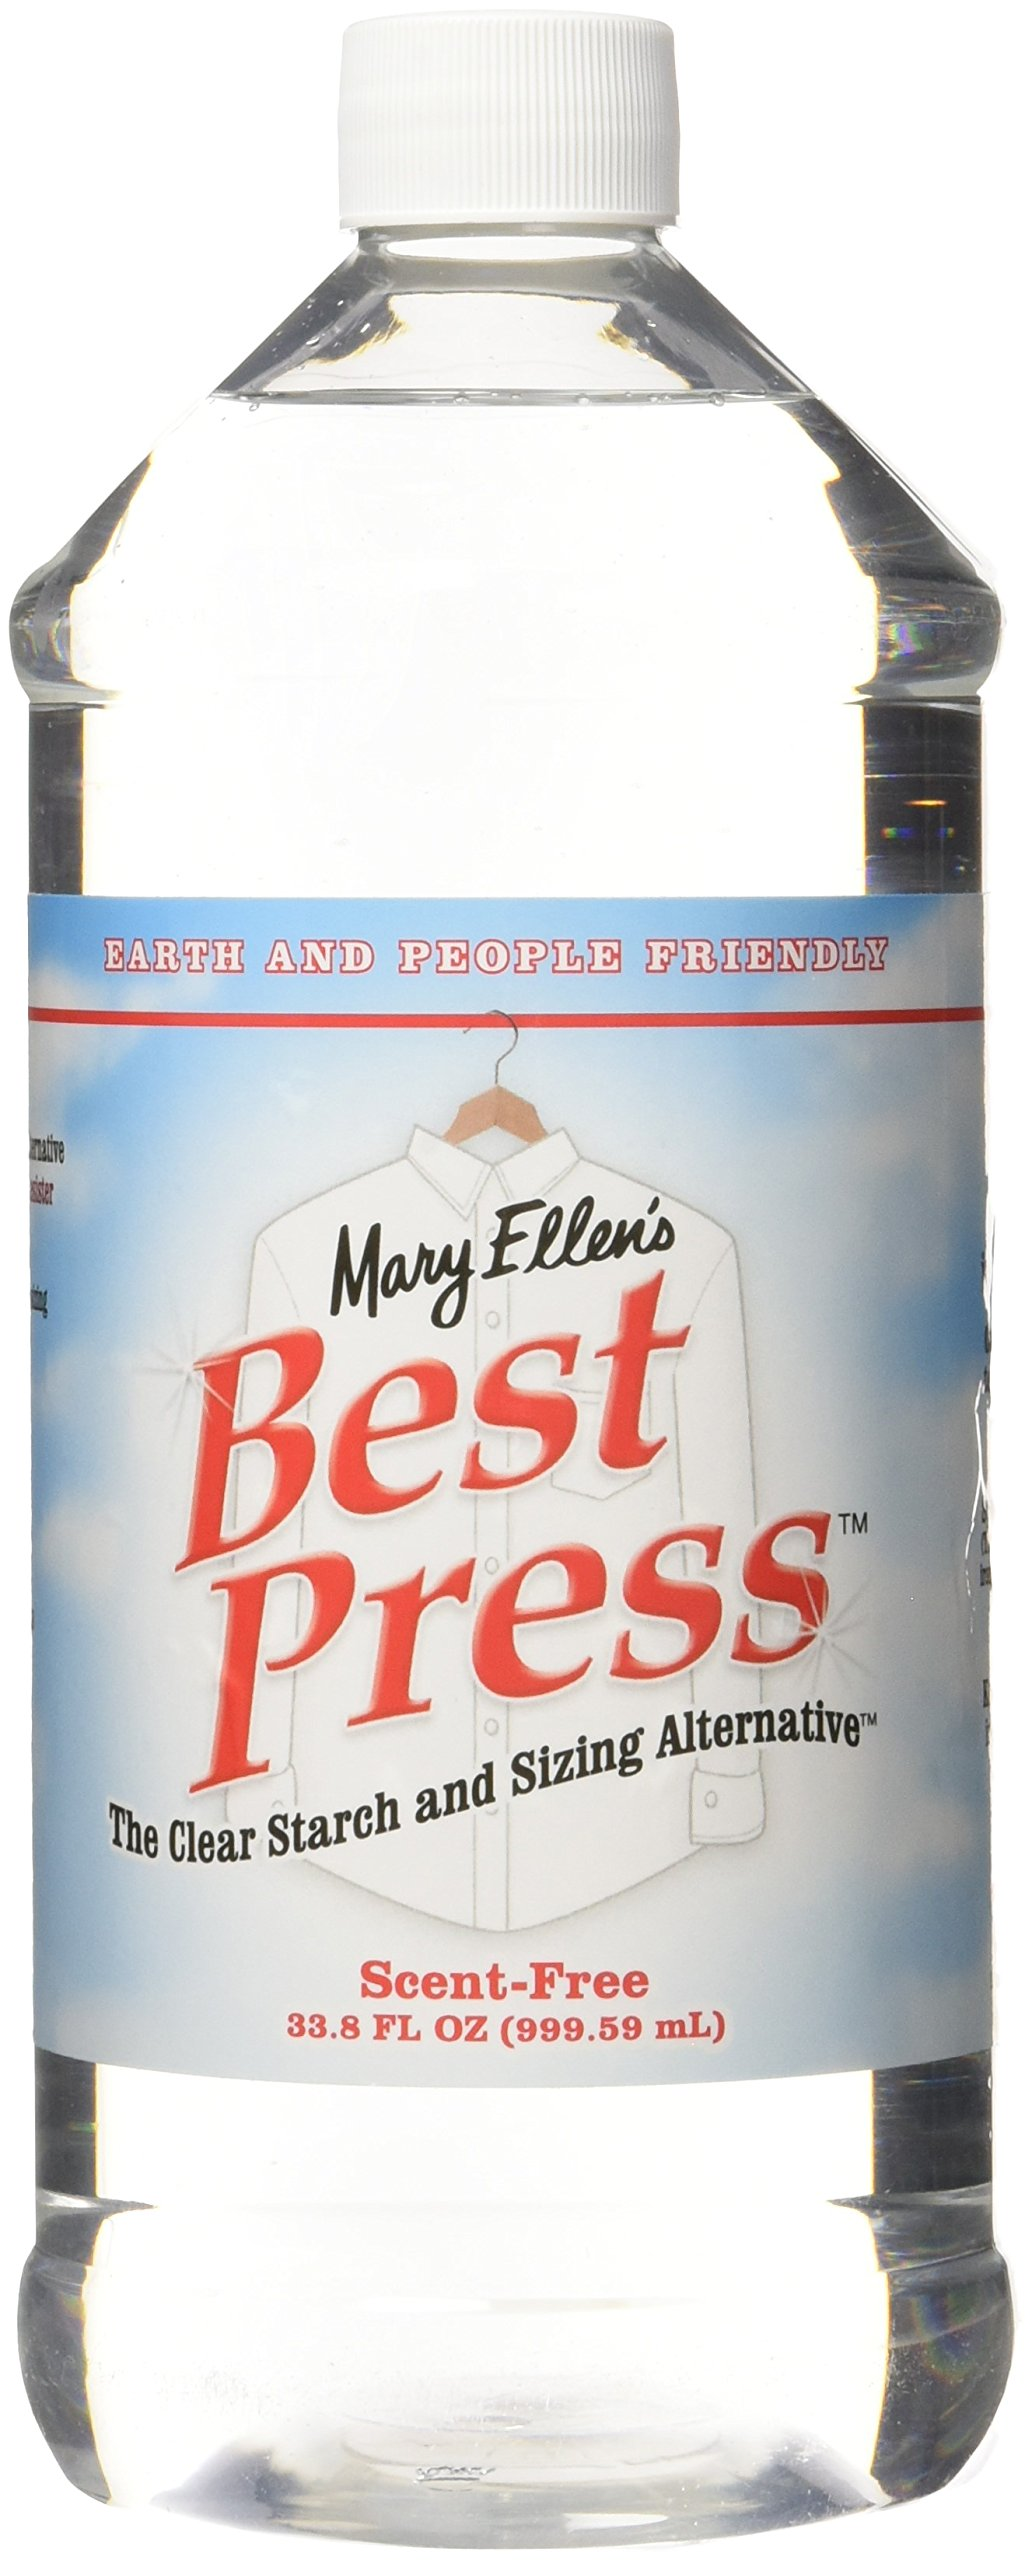 Mary Ellen's Best Press Refills 33.8 Ounces-Scent Free by Mary Ellen Products